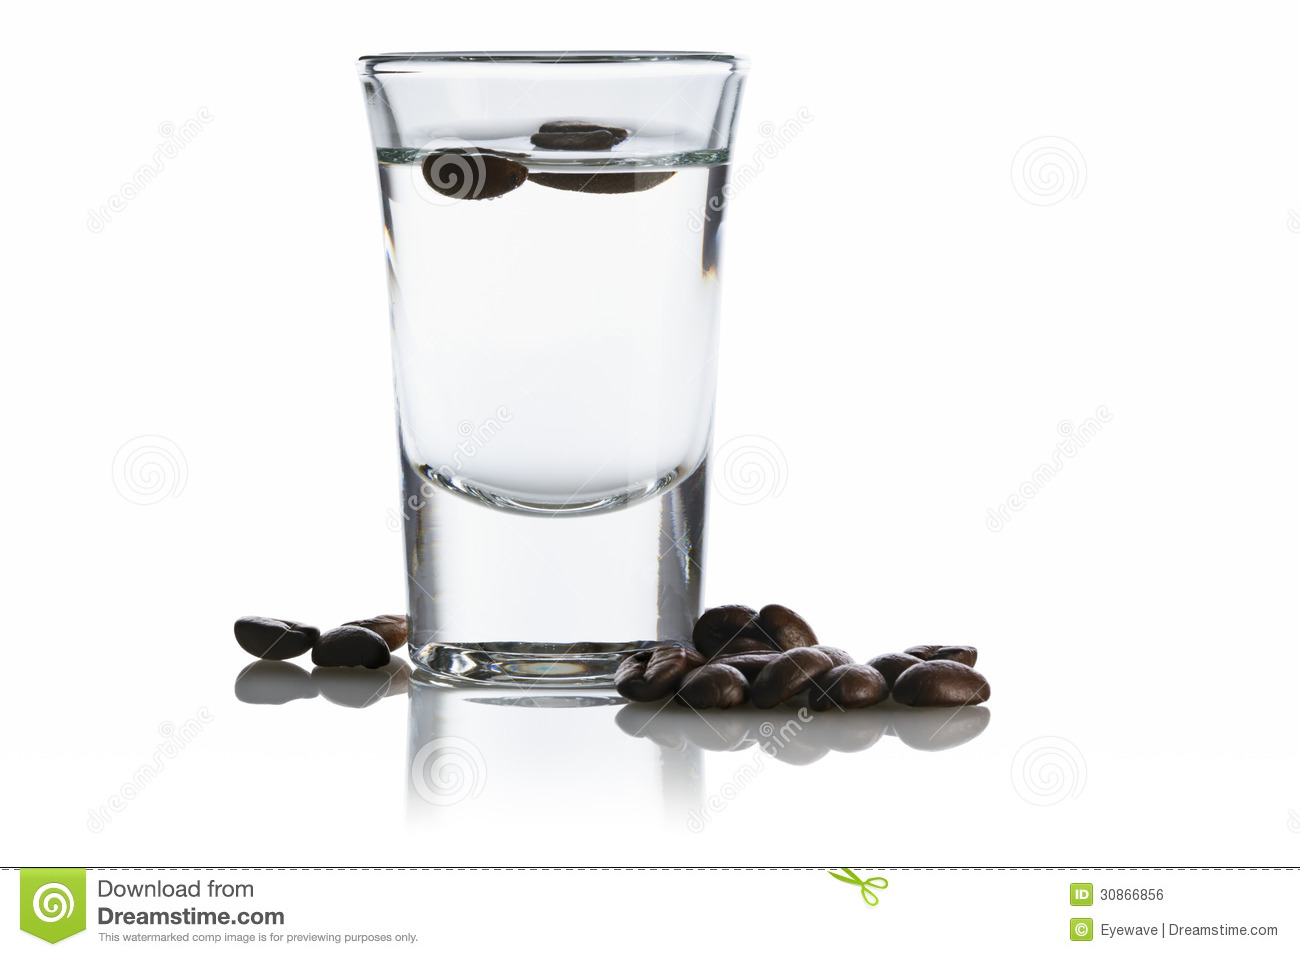 How To Drink Sambuca With Coffee Beans